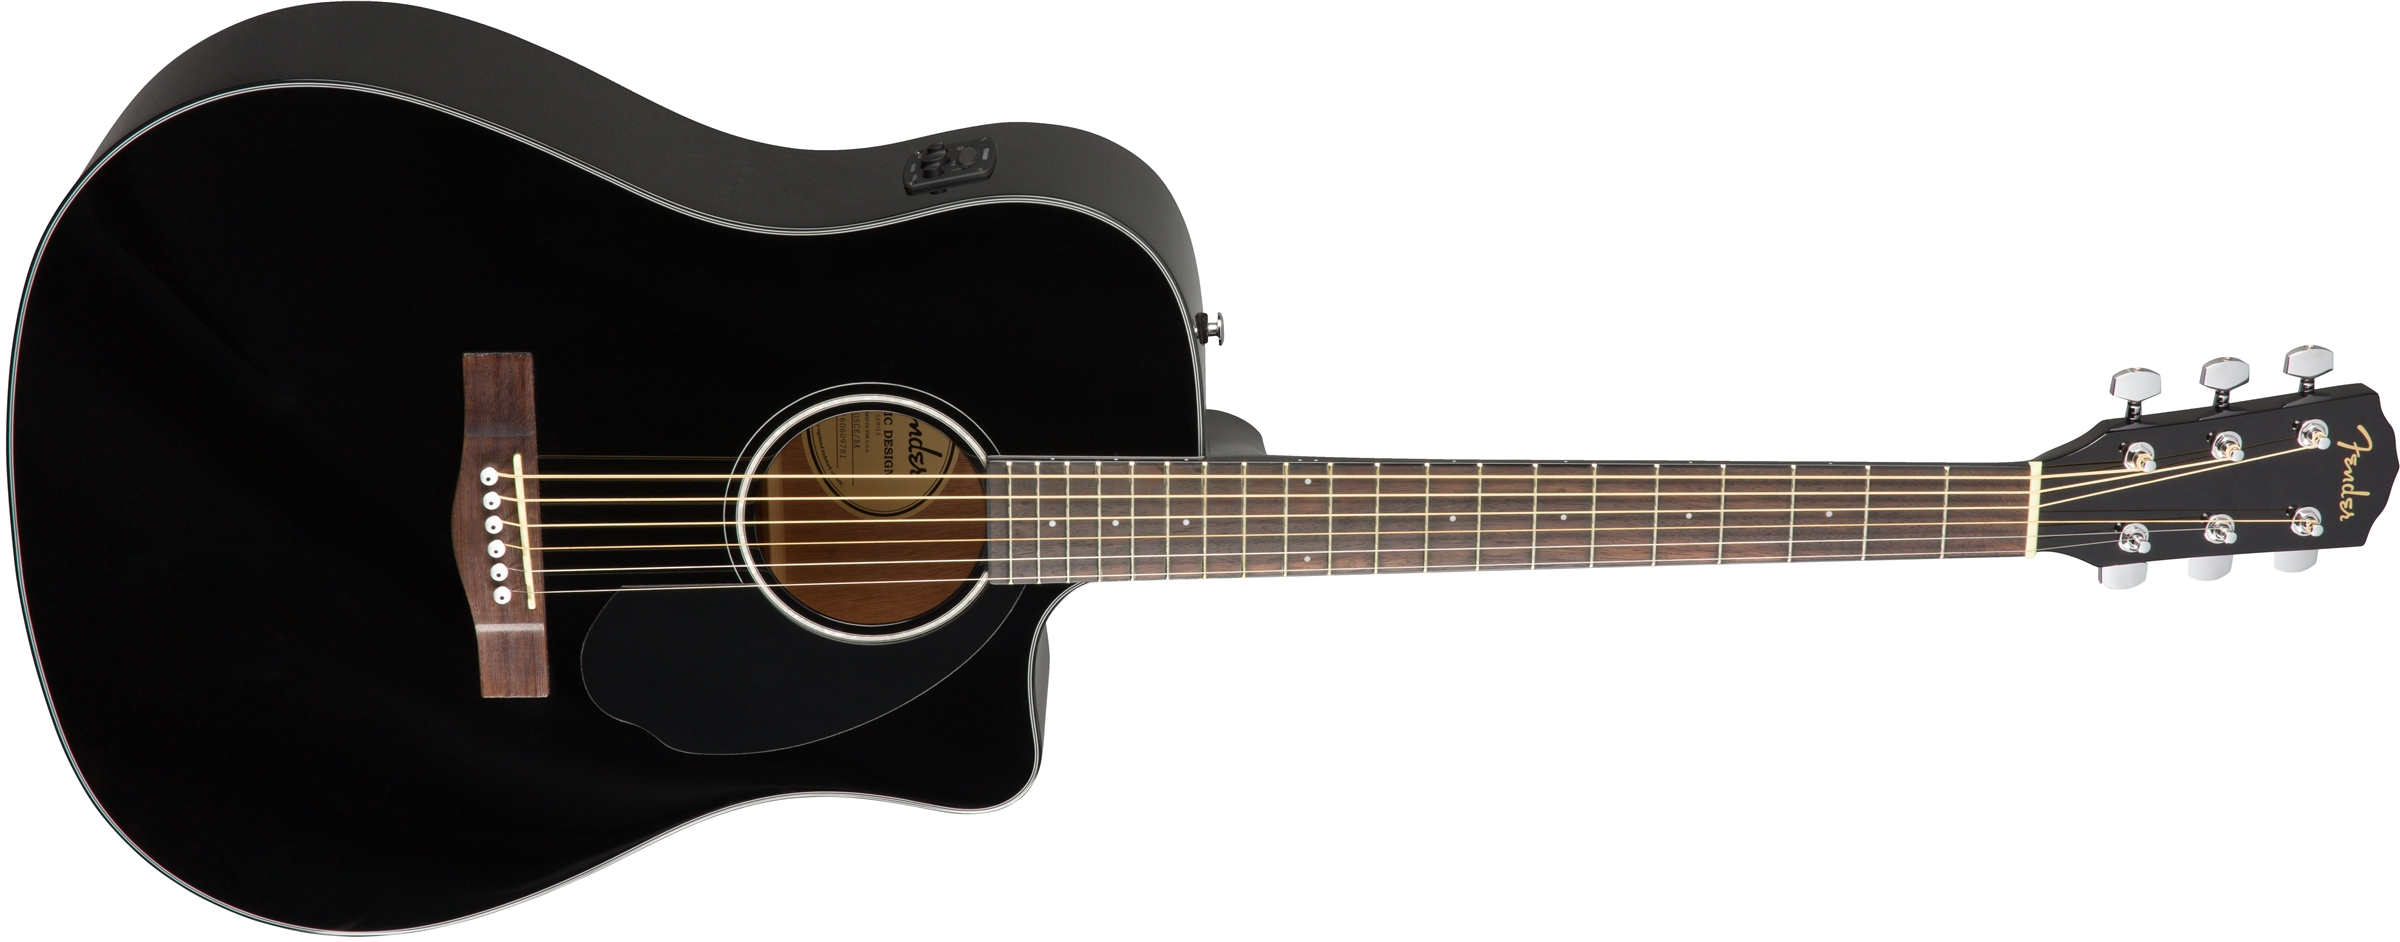 Fender Cd 60sce Black